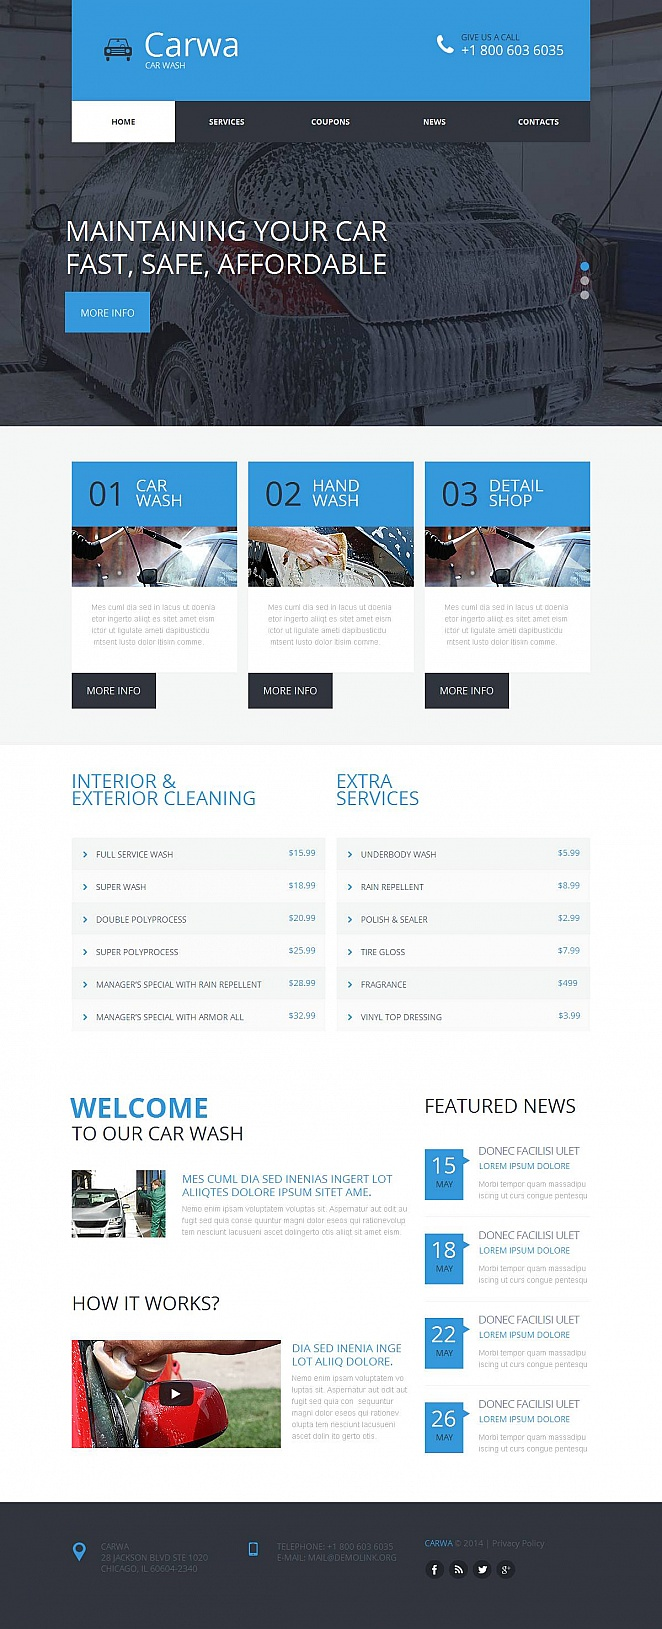 Car Wash Website Template with Large Images - image